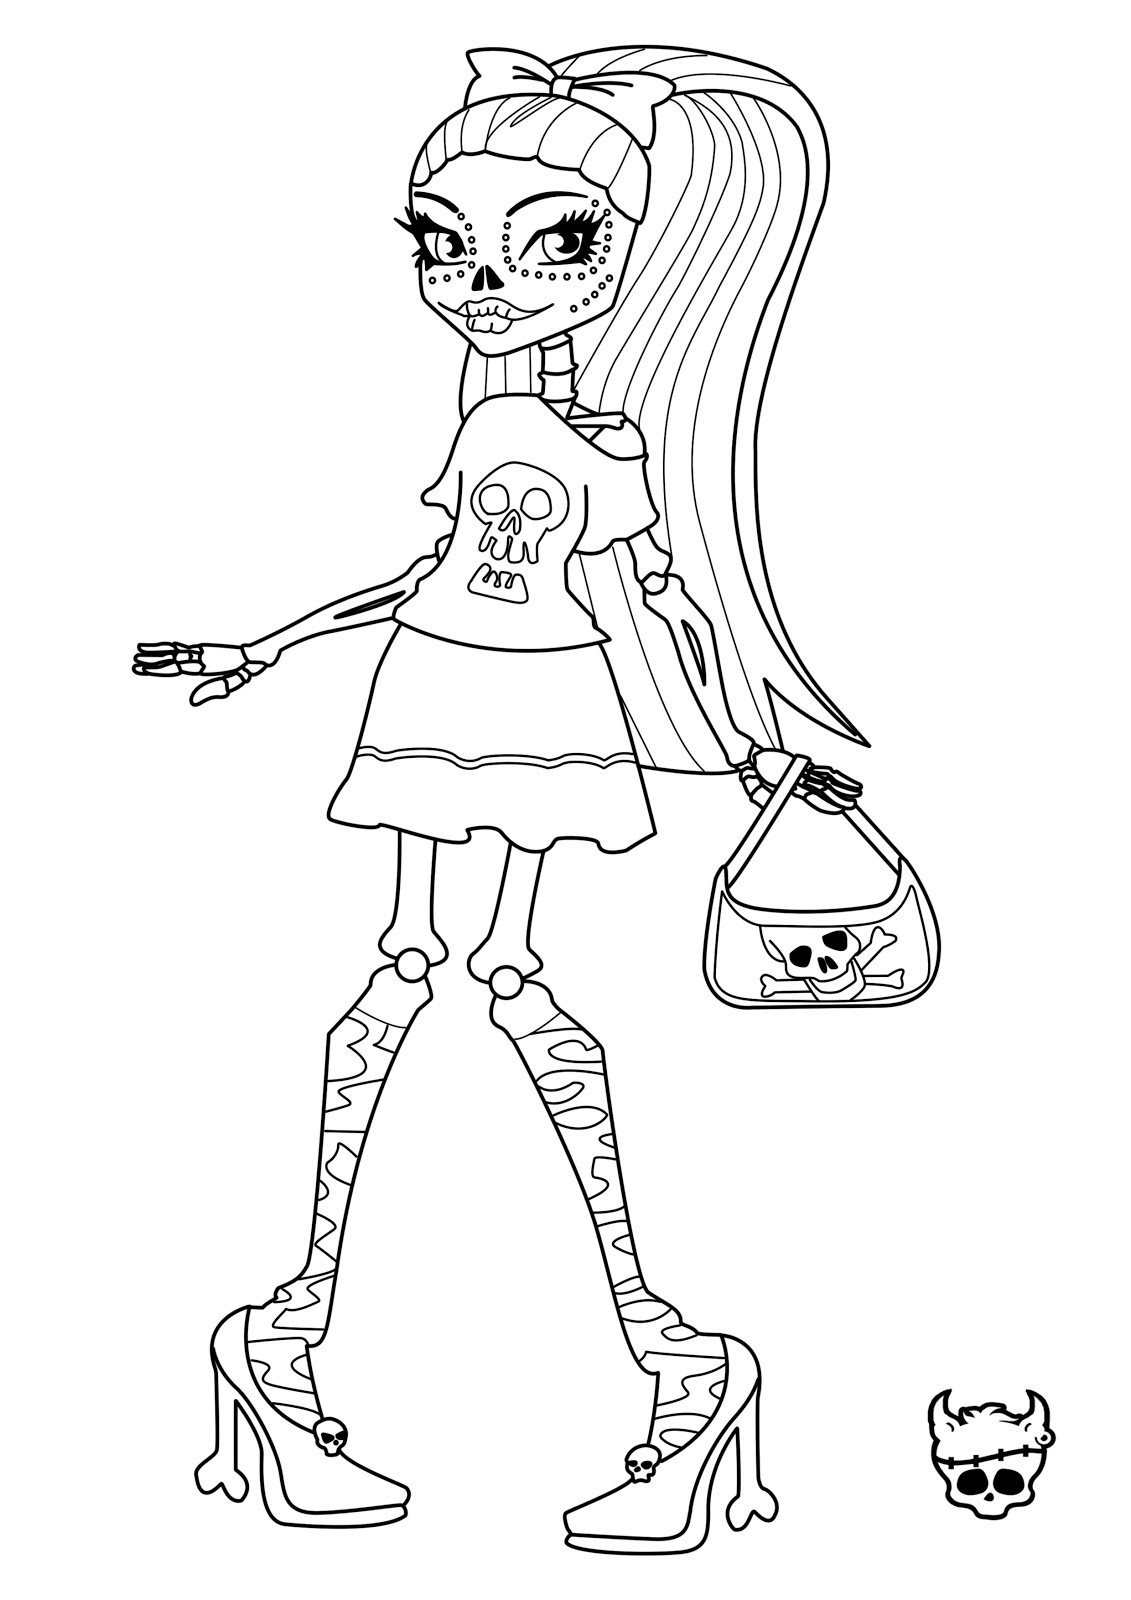 Delighted 100 Template Small 12 Page Booklet Template Clean 2 Column Notes Template 2 Page Resume Header Old 2003 Excel Templates Fresh2007 Powerpoint Templates Unique Comics Animation: Ultimate Monster High Coloring Pages